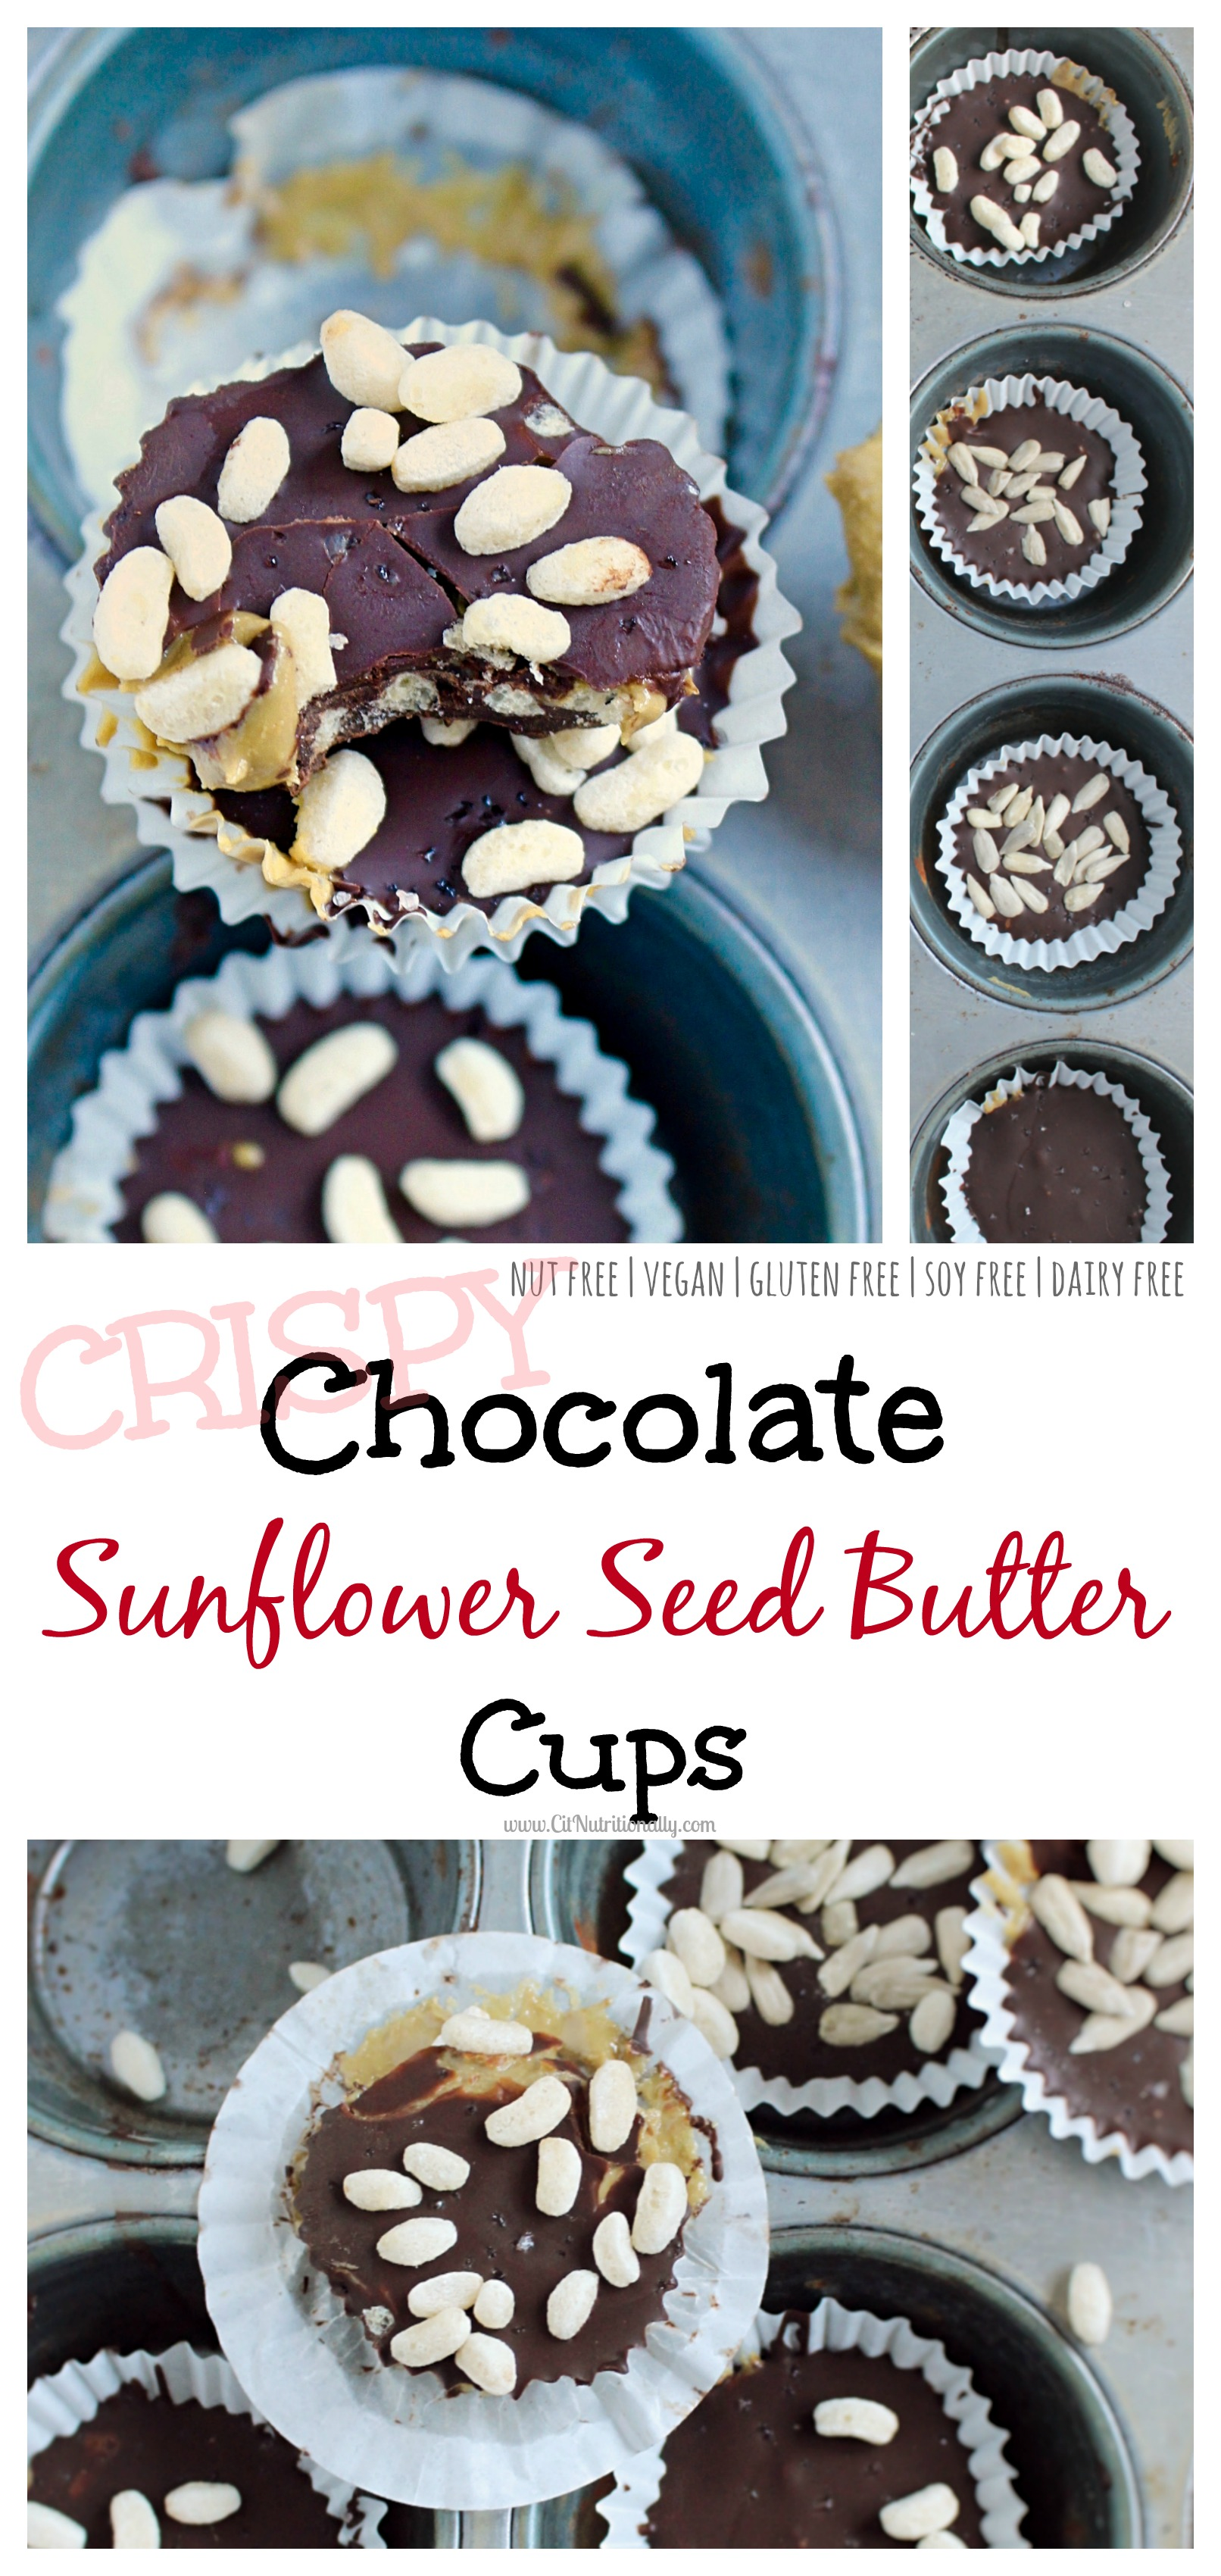 No Bake Crispy Chocolate Sunflower Seed Butter Cups | C it Nutritionally Nut Free, Gluten Free, Egg free, Soy free, Dairy Free